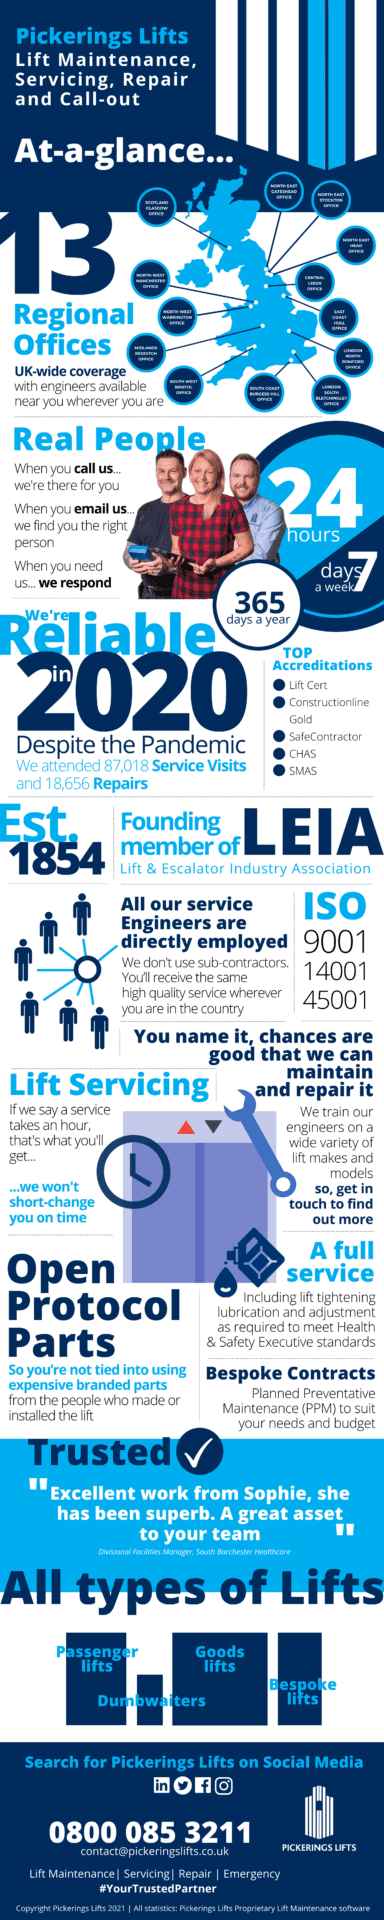 Infographic, Lift maintenance, lift servicing, lift repair, lift emergency